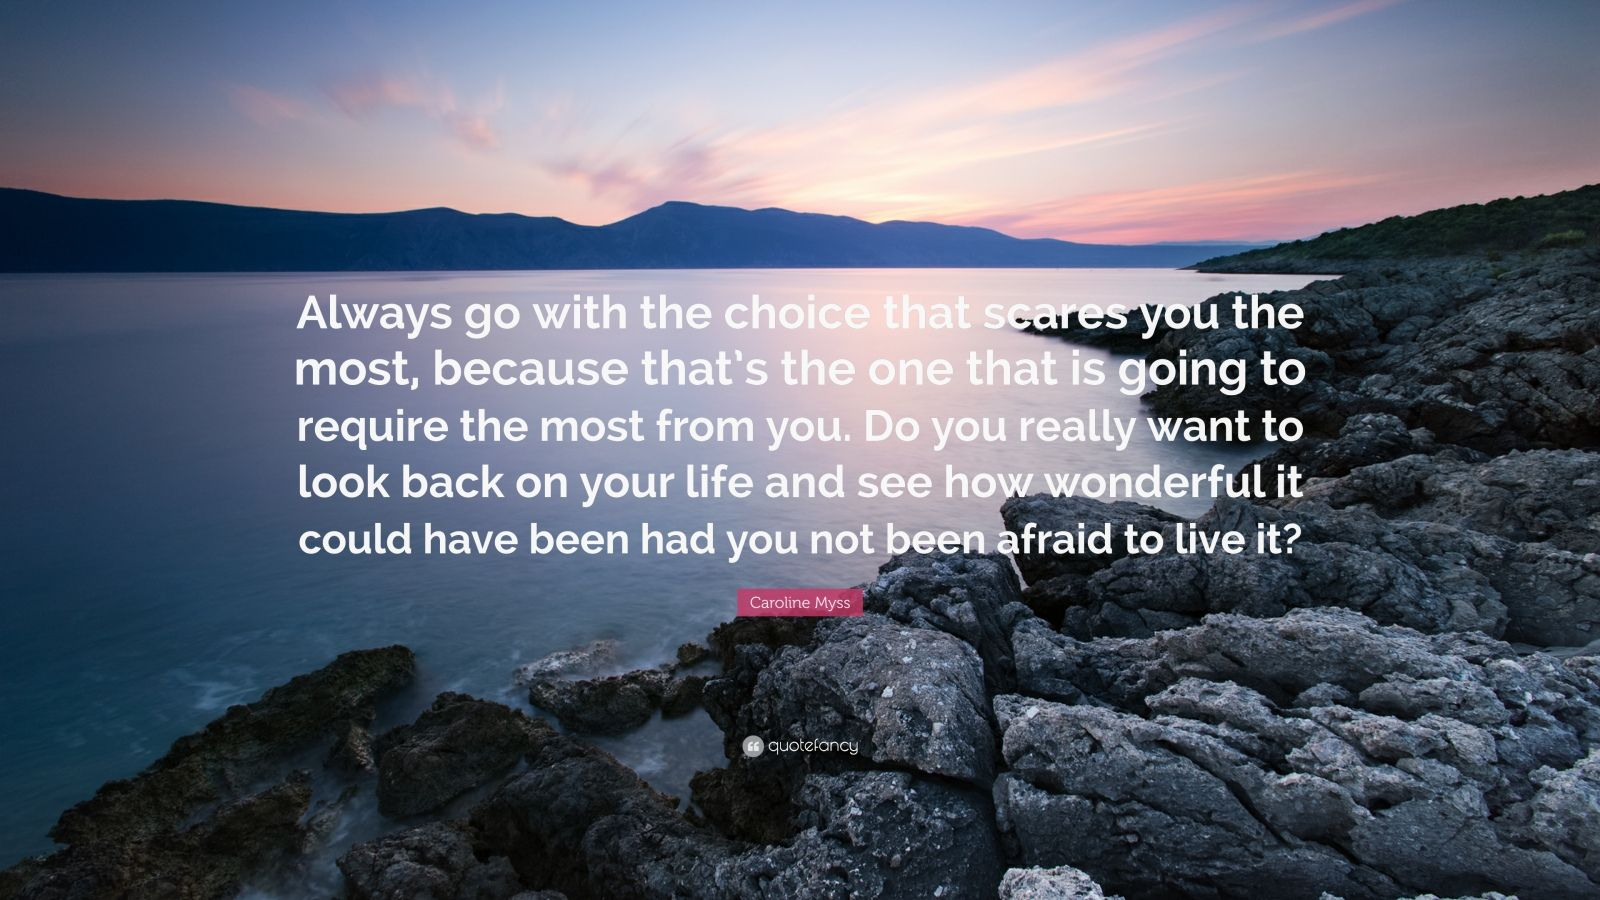 """Caroline Myss Quote: """"Always go with the choice that scares you the most, because that's the one that is going to require the most from you. Do you really want to look back on your life and see how wonderful it could have been had you not been afraid to live it?"""""""